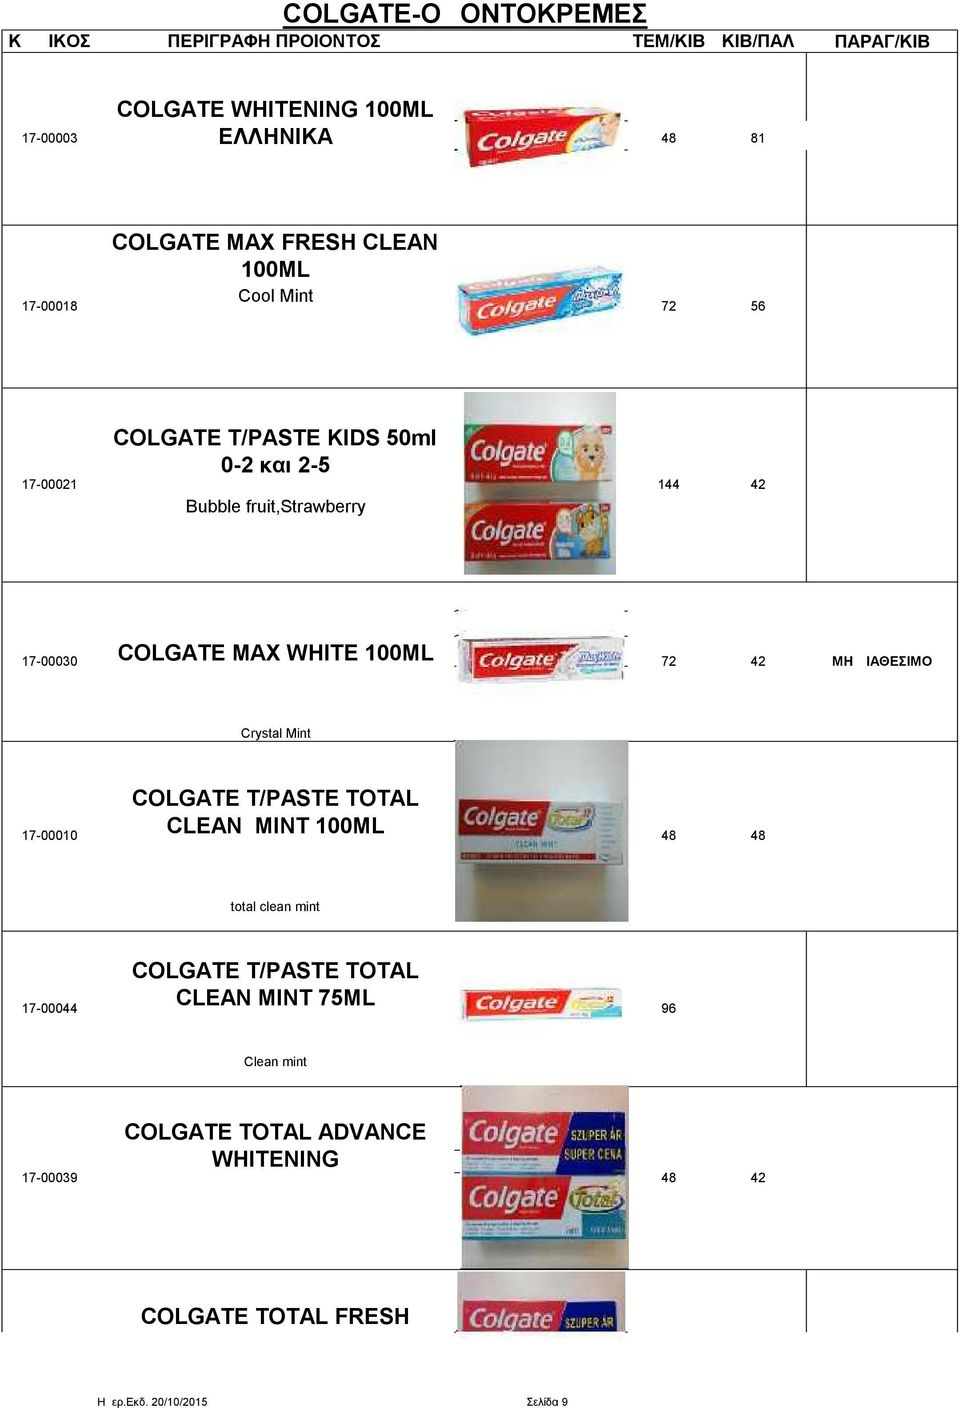 Crystal Mint 17-00010 COLGATE T/PASTE TOTAL CLEAN MINT 100ML 48 48 total clean mint COLGATE T/PASTE TOTAL CLEAN MINT